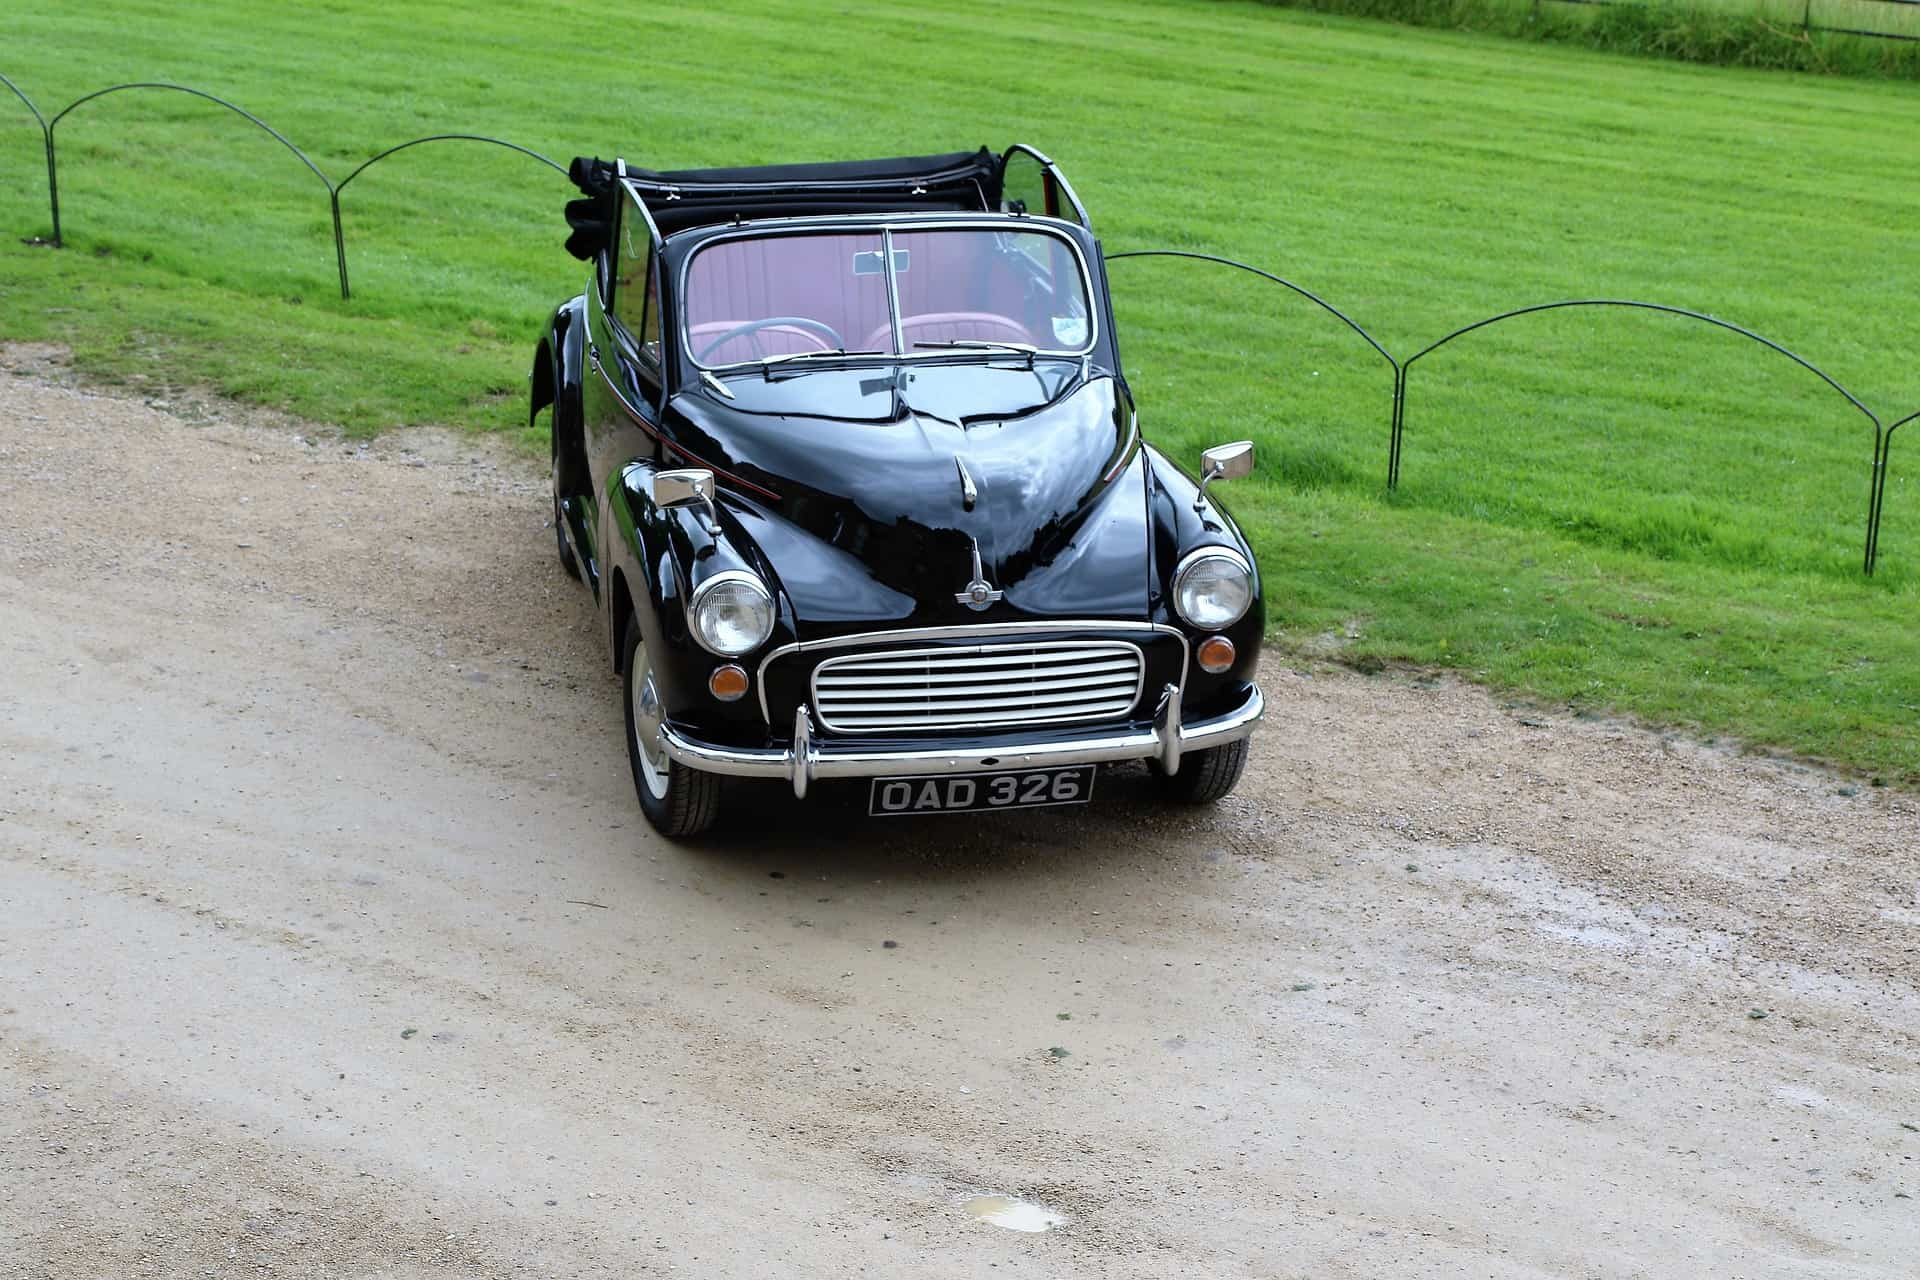 Discover a fascinating collection of cars at the Myreton Motor Museum near Thurston Manor